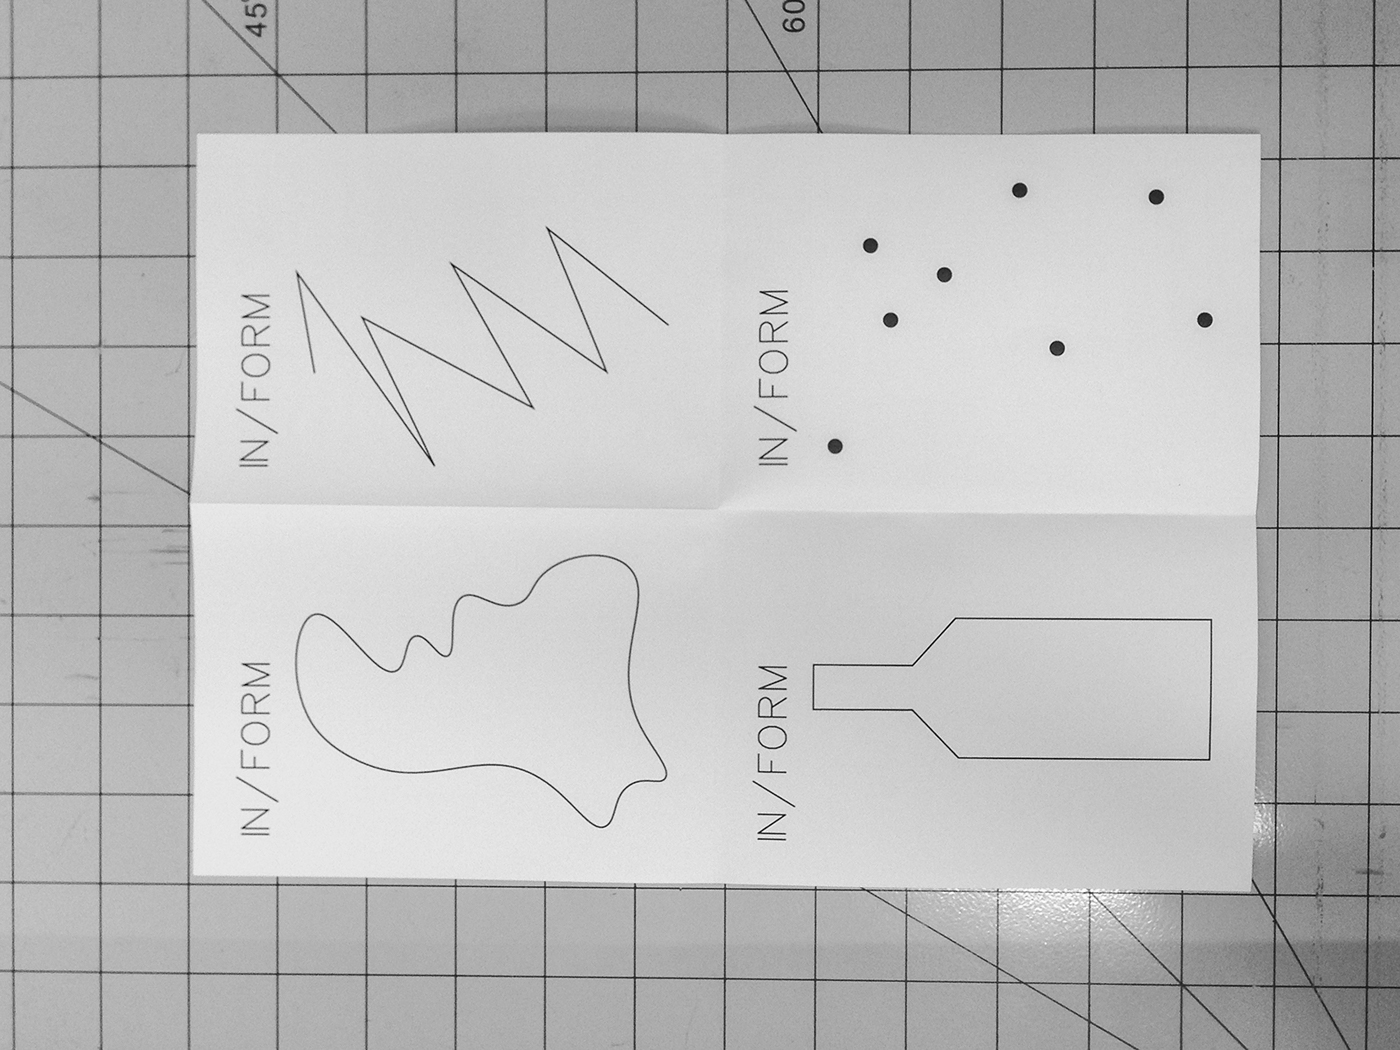 drawbot graphic design Form inform poster interactive brand Event Weekly pencil